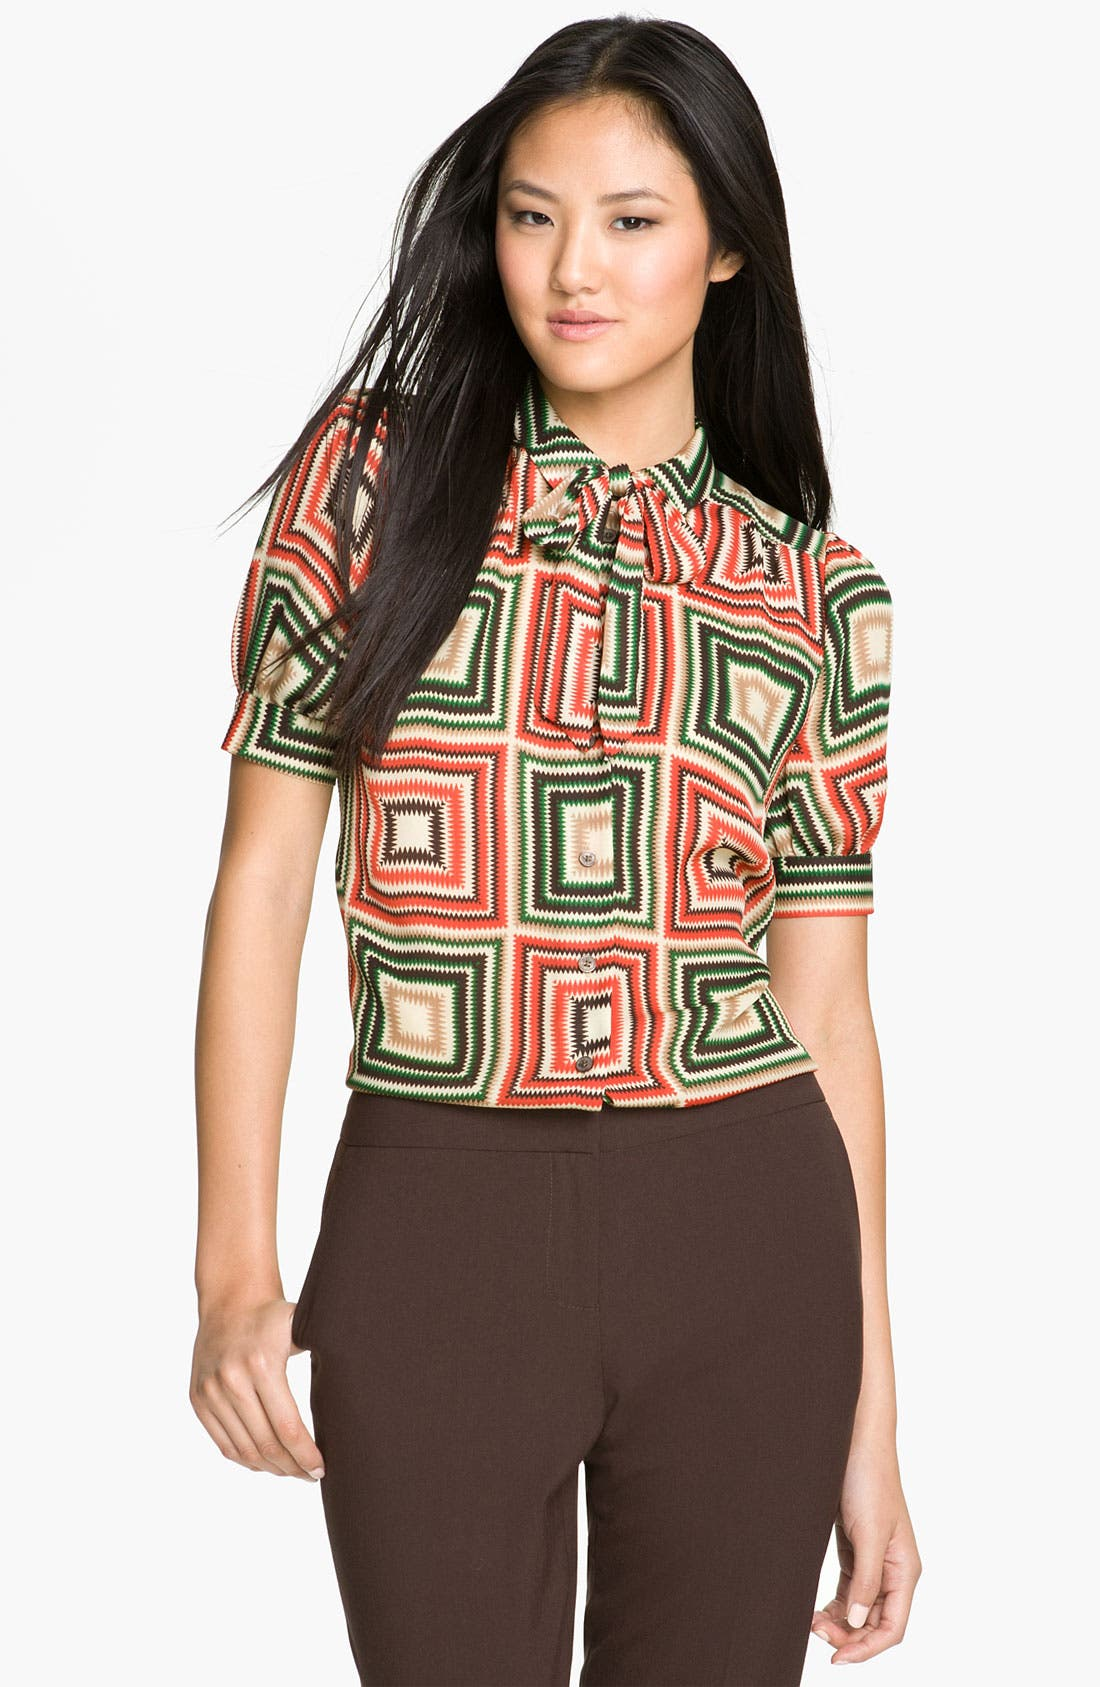 Alternate Image 1 Selected - Vince Camuto Print Tie Neck Top